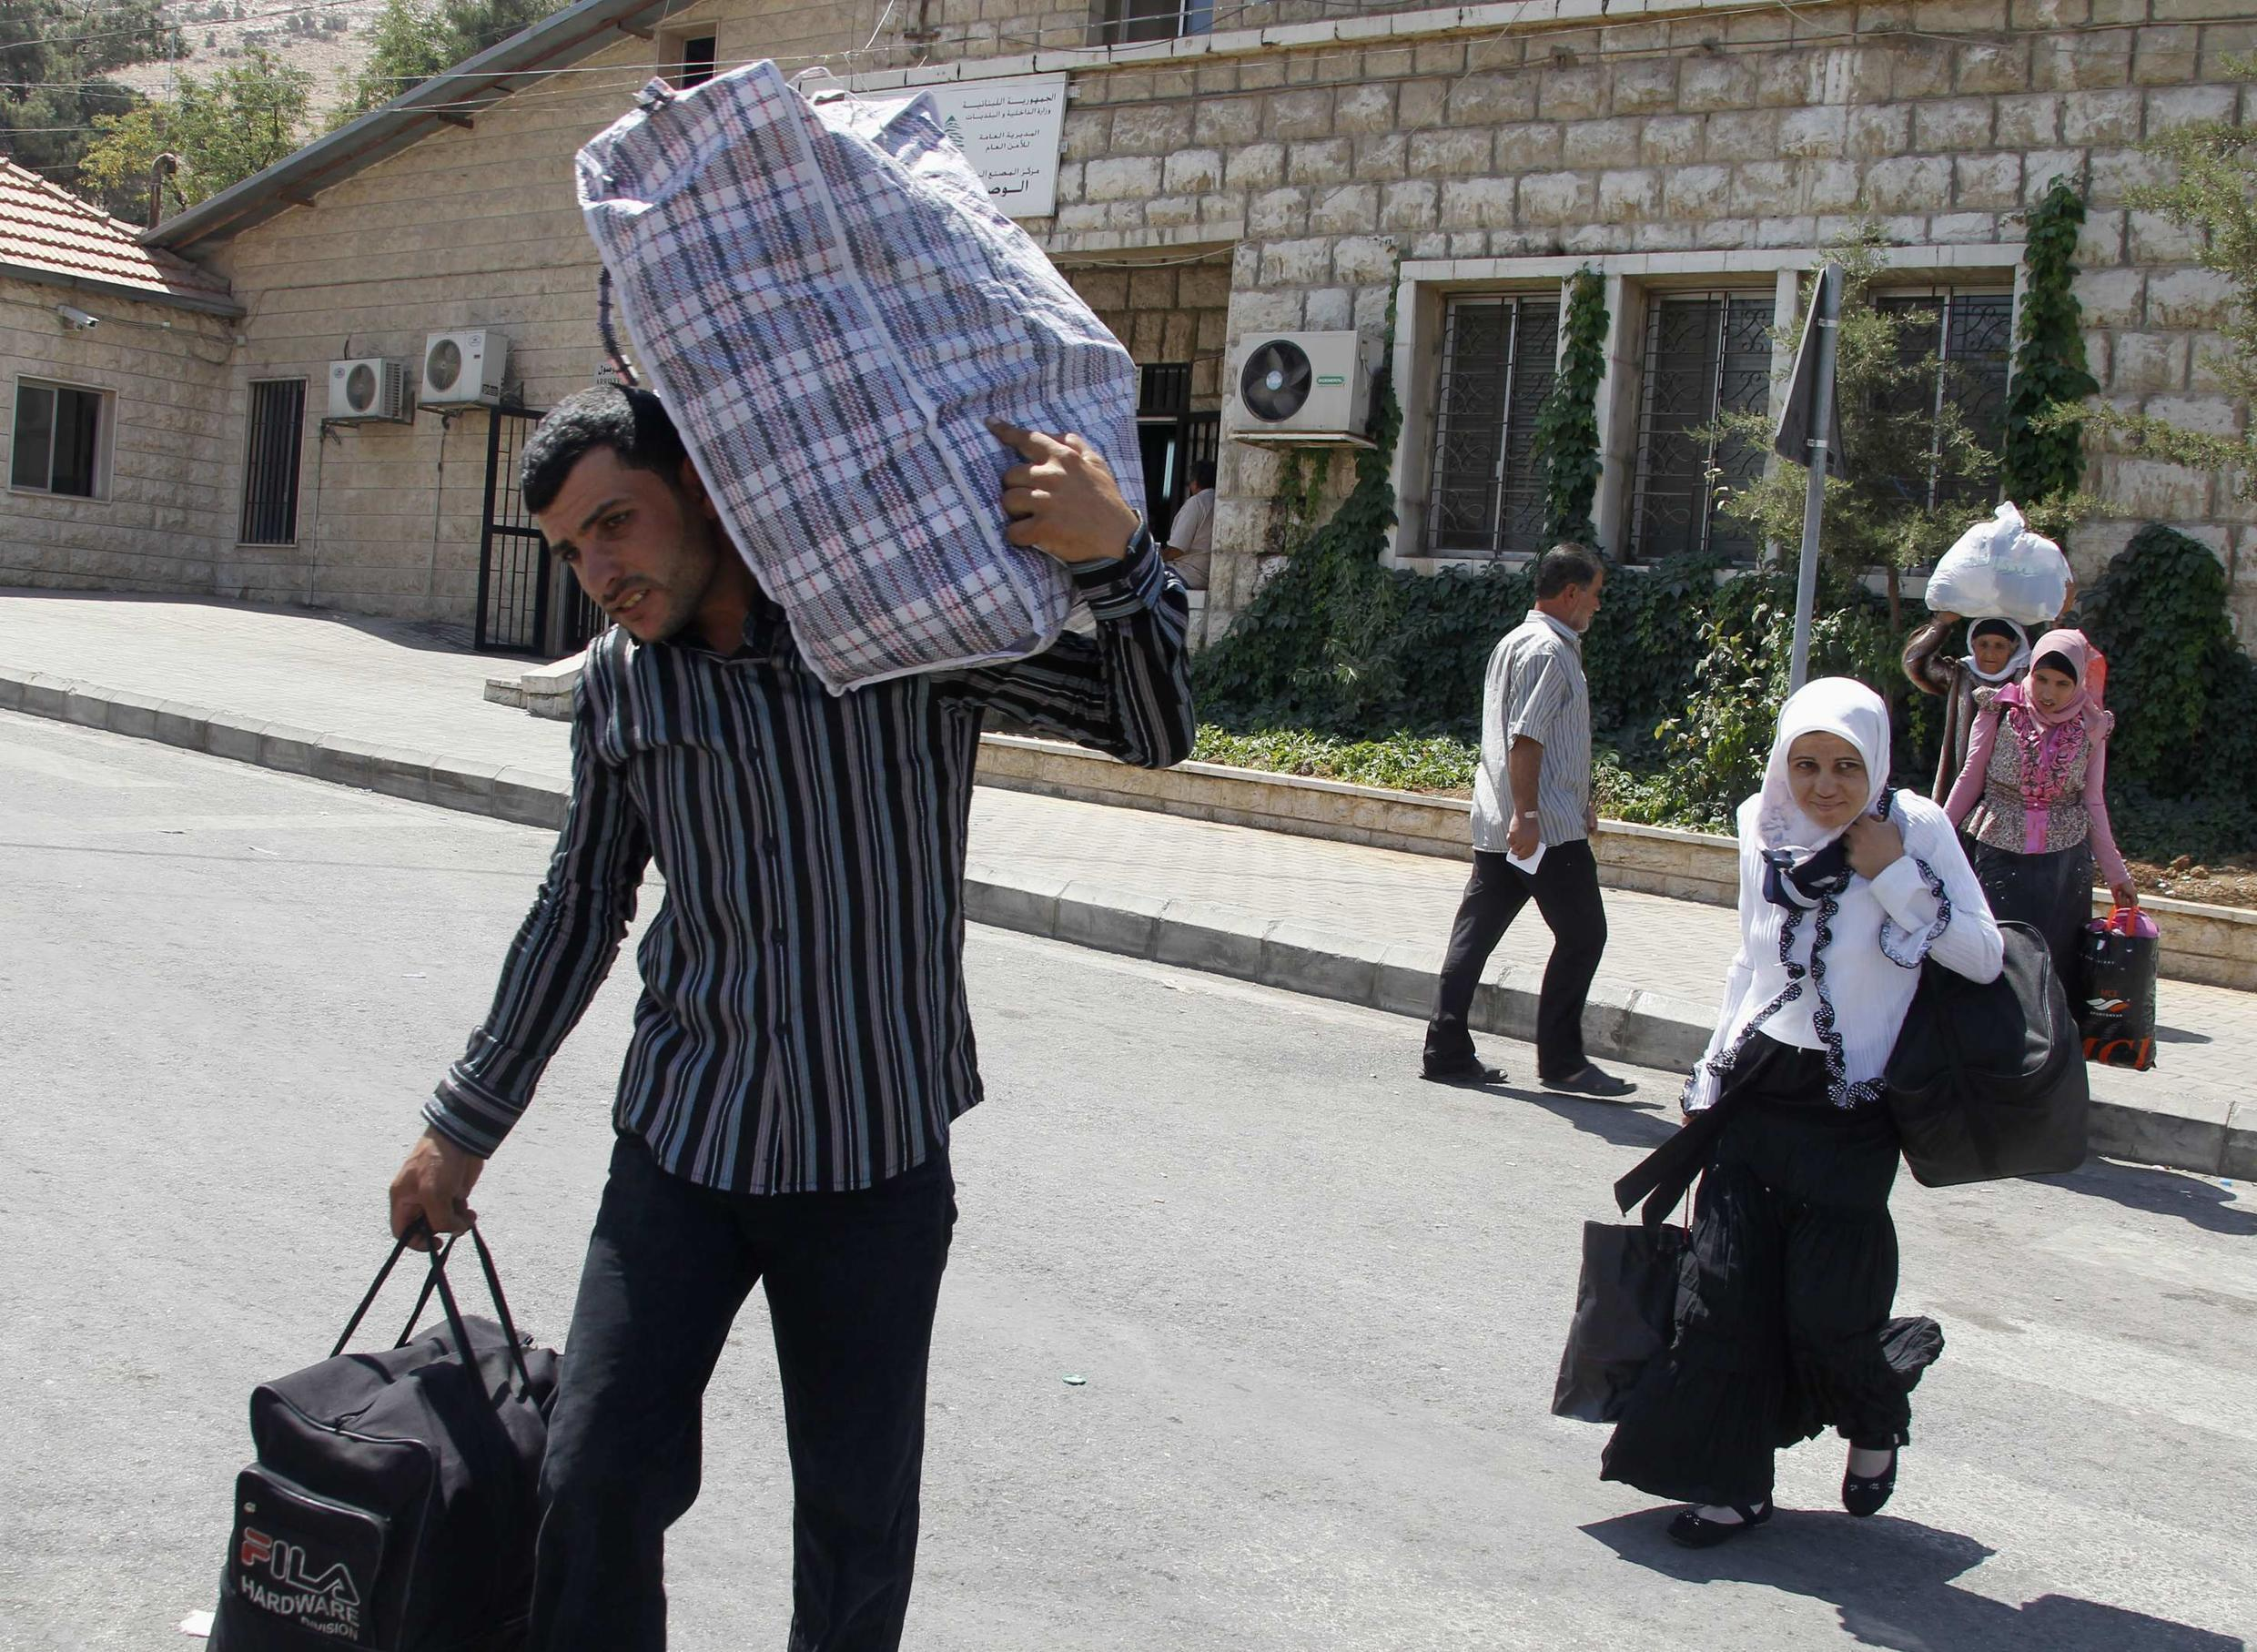 Syrians try to flee to Labanon at Al-Masnaa